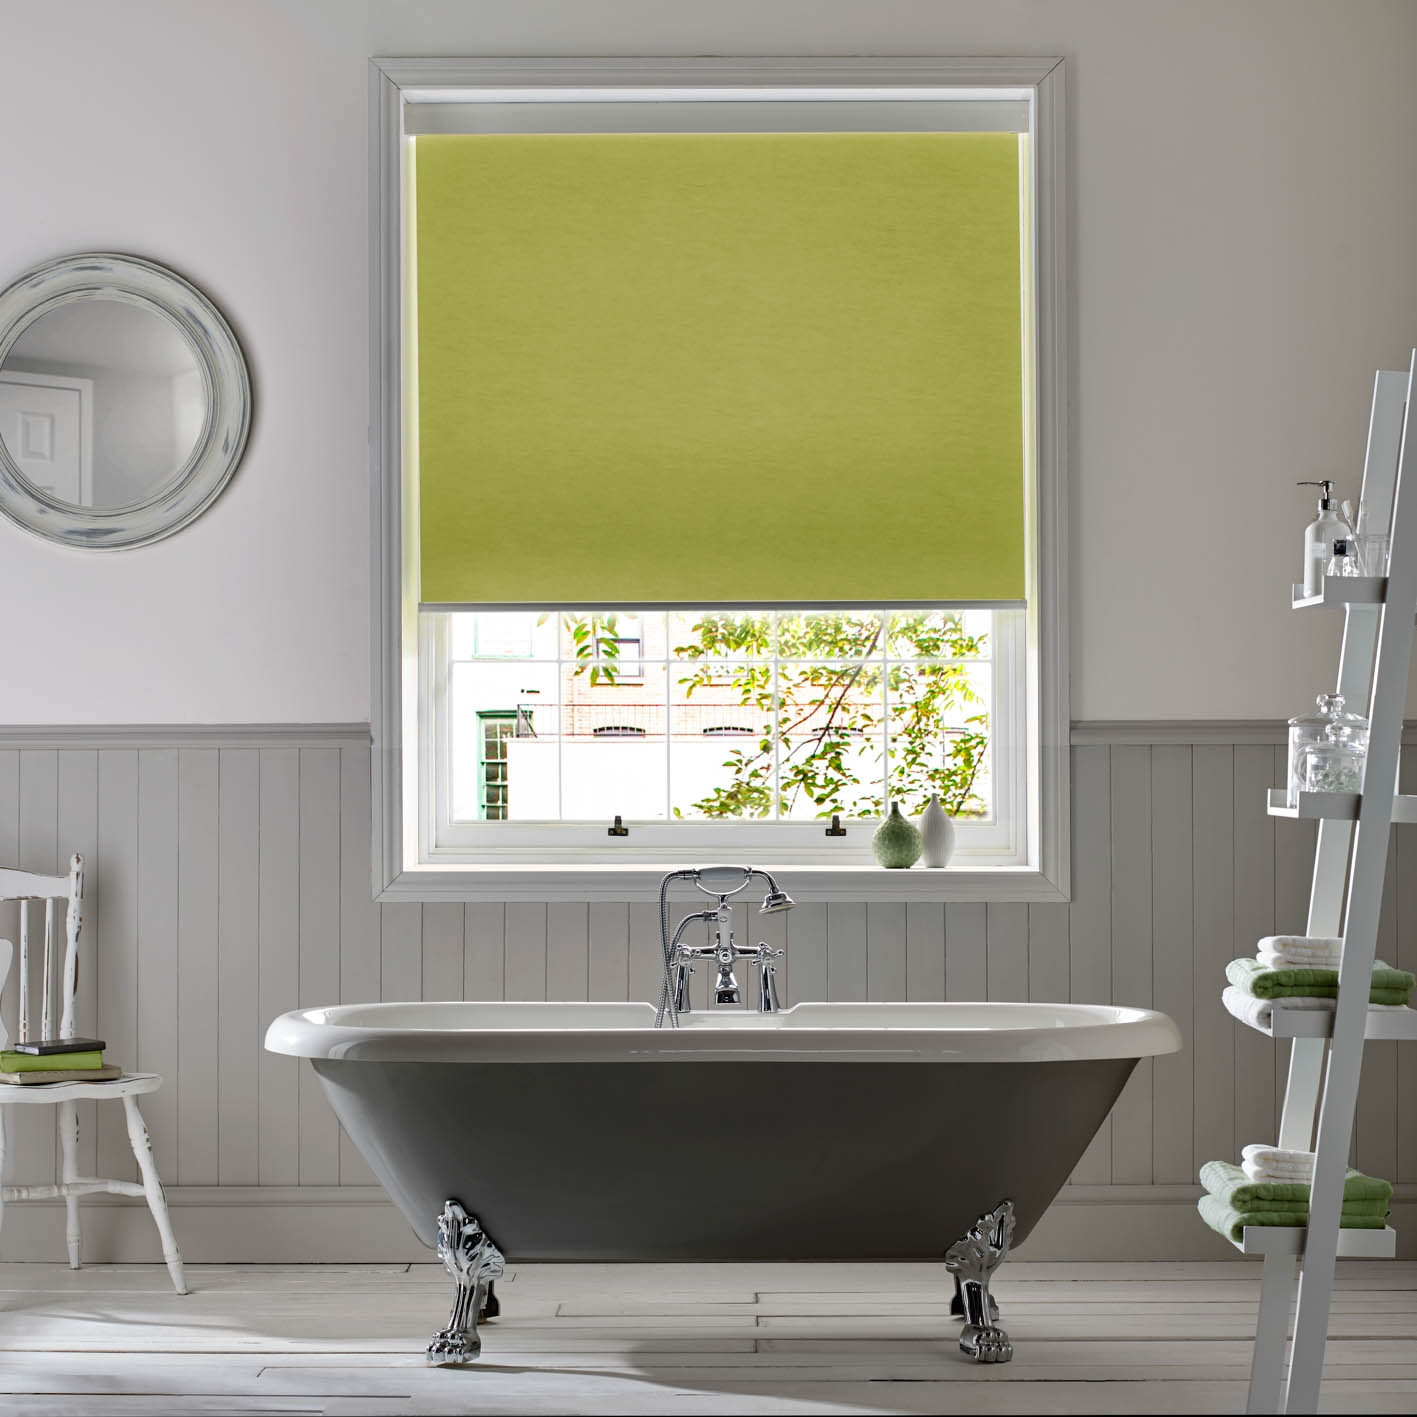 Roller Window Blinds With Ultra One Touch Control Appeal Home For Bathroom Blinds (View 15 of 15)